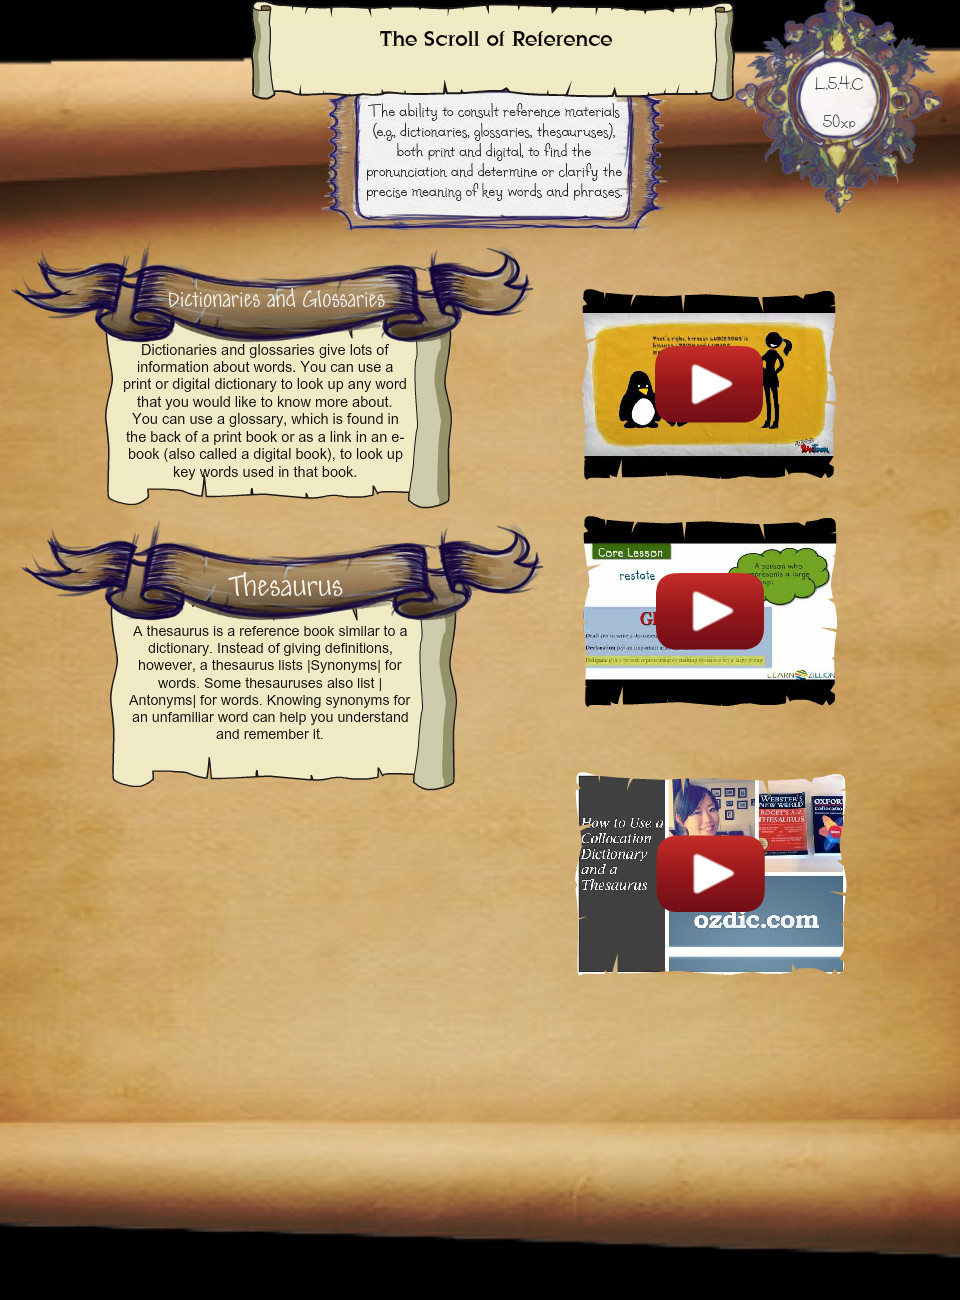 L 5 4 C) The Scroll of Reference: text, images, music, video